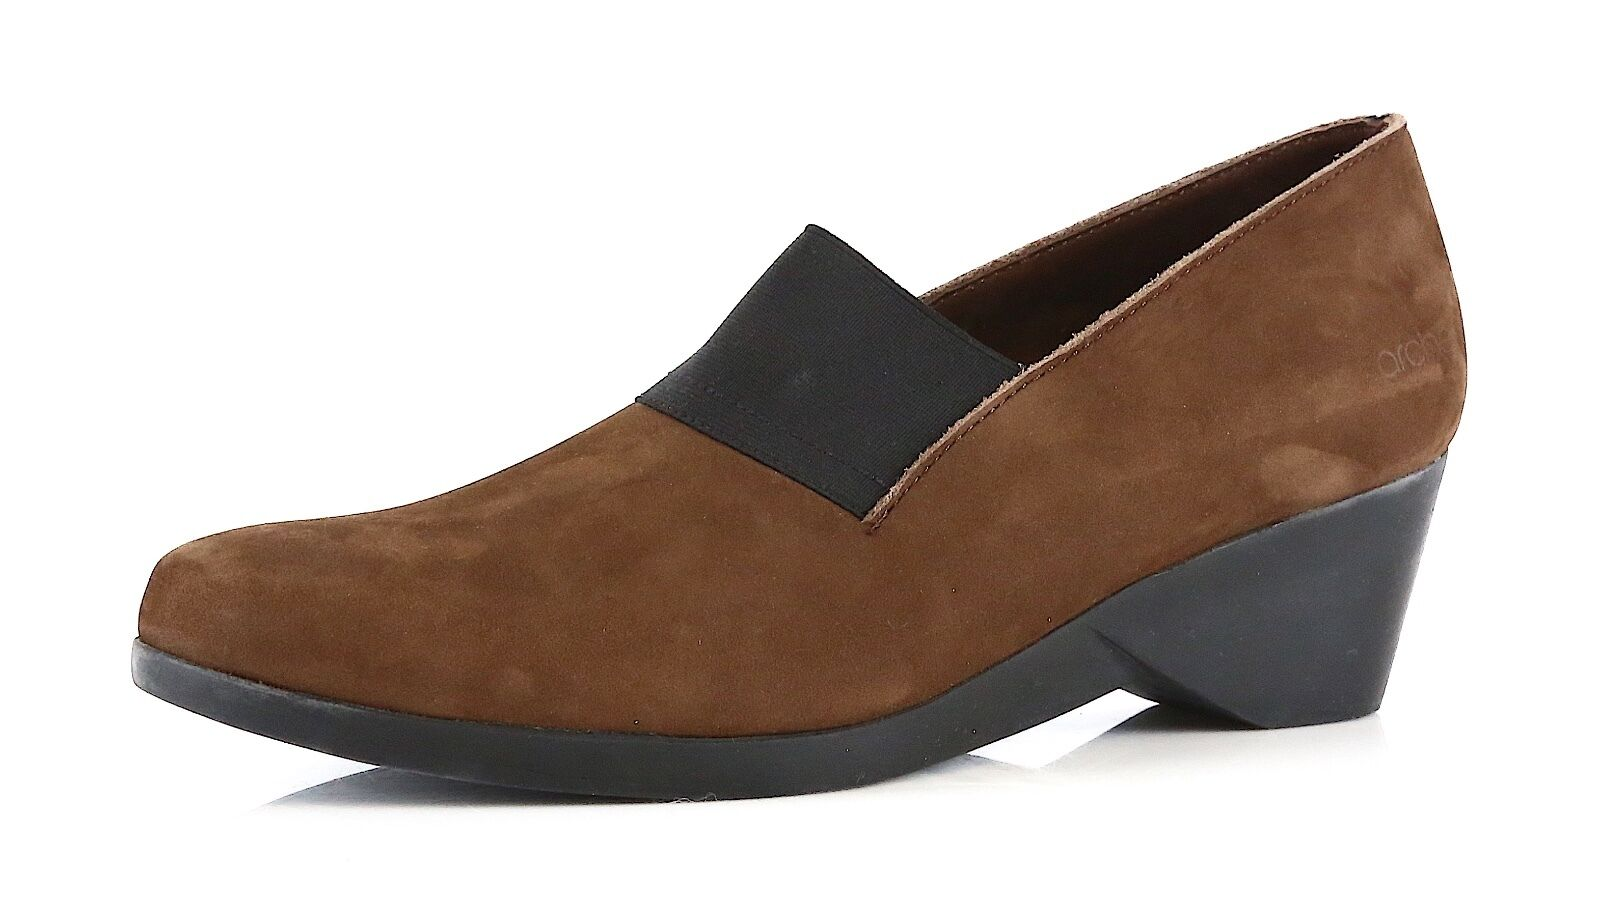 Arche Eonon Women's Slip-on Wedge Brown 1188 Sz US 5 EUR 36